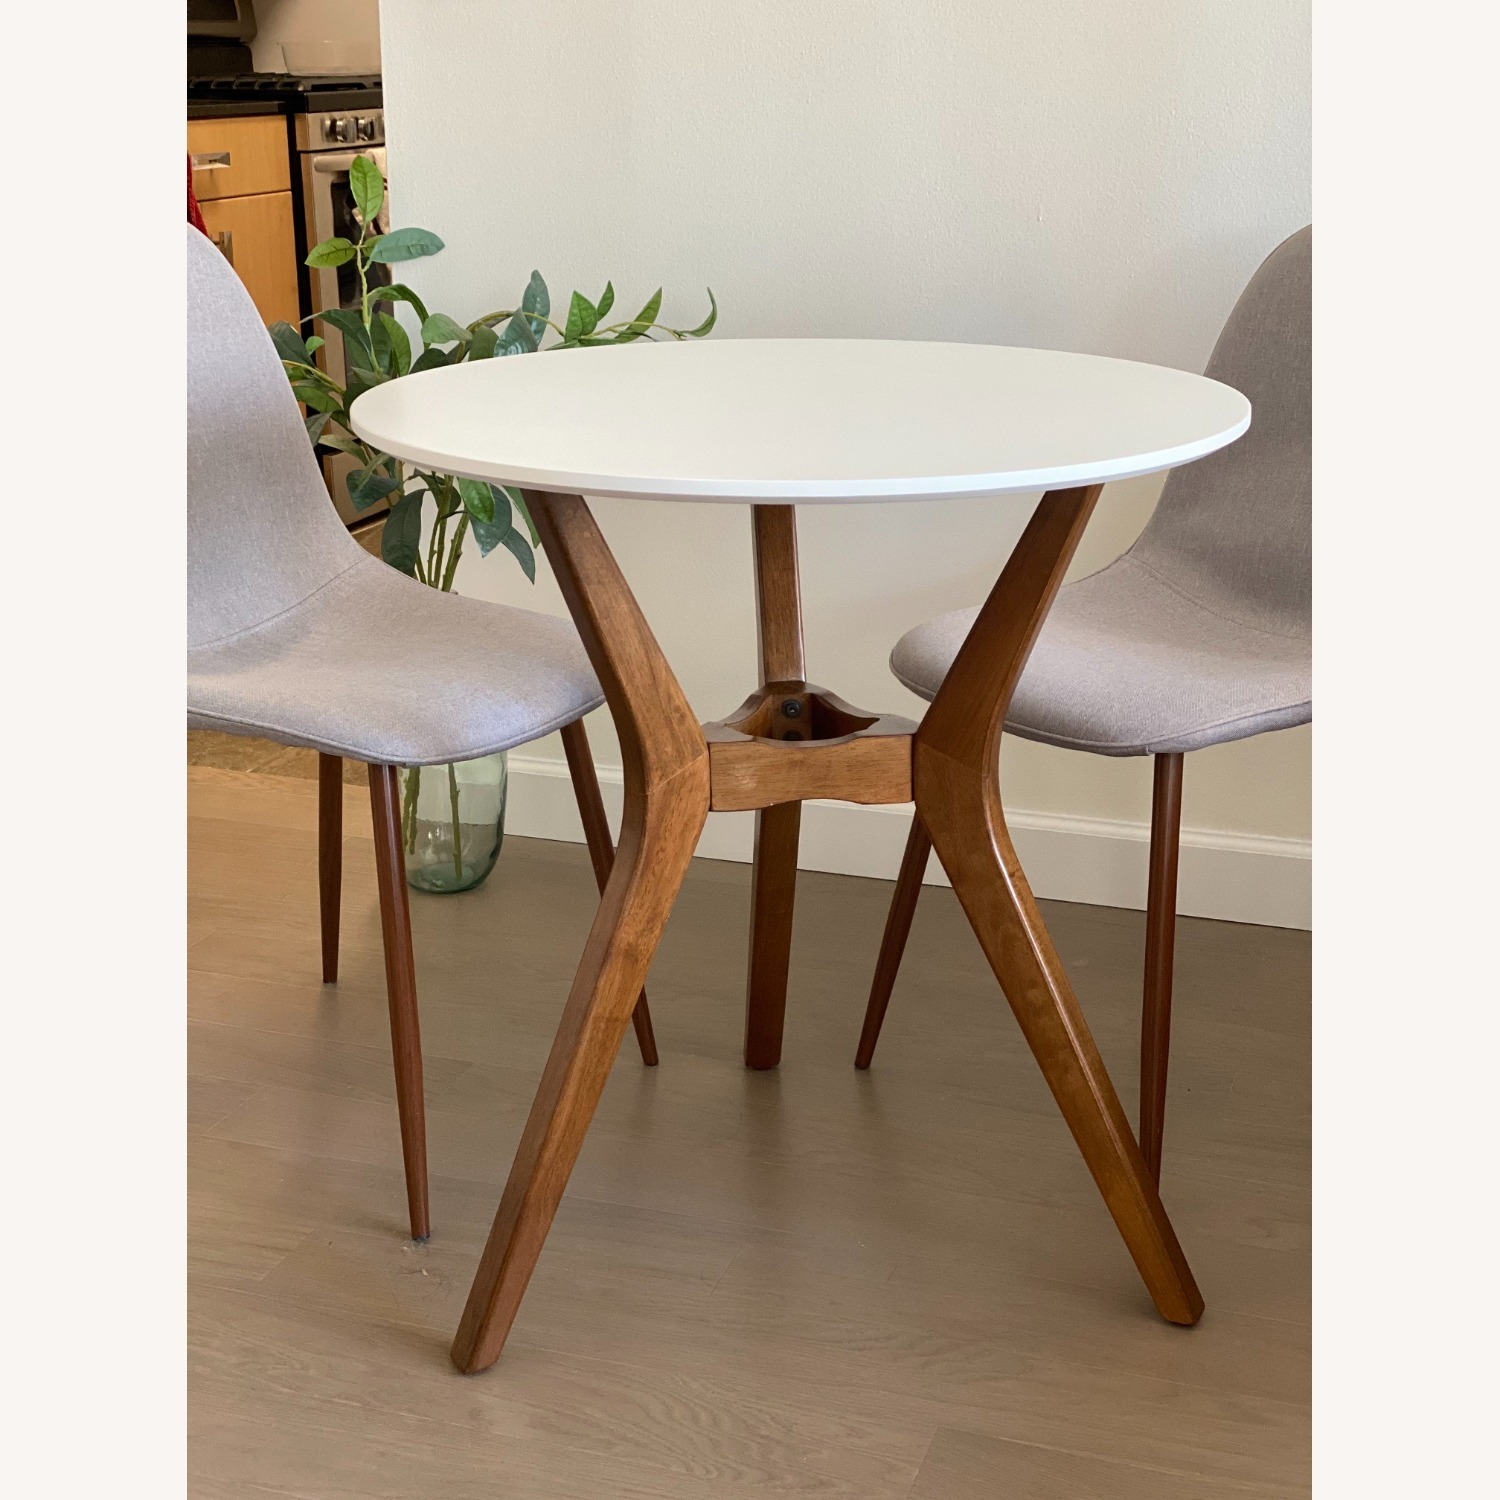 Target Midcentury Bistro Table with 2 Dining Chairs - image-1